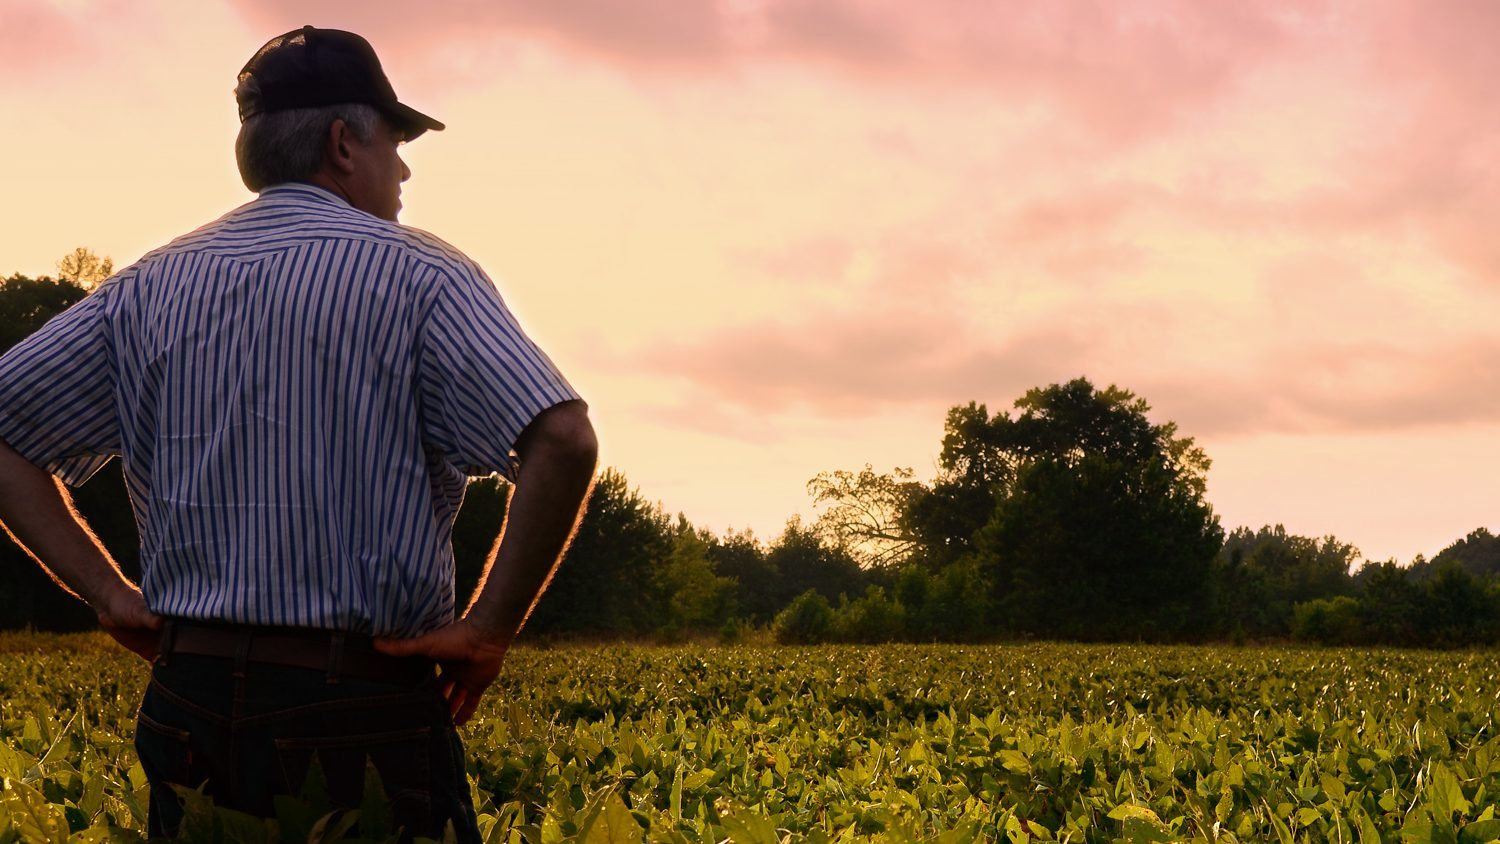 A North Carolina farmer checks his soybean field at dawn.